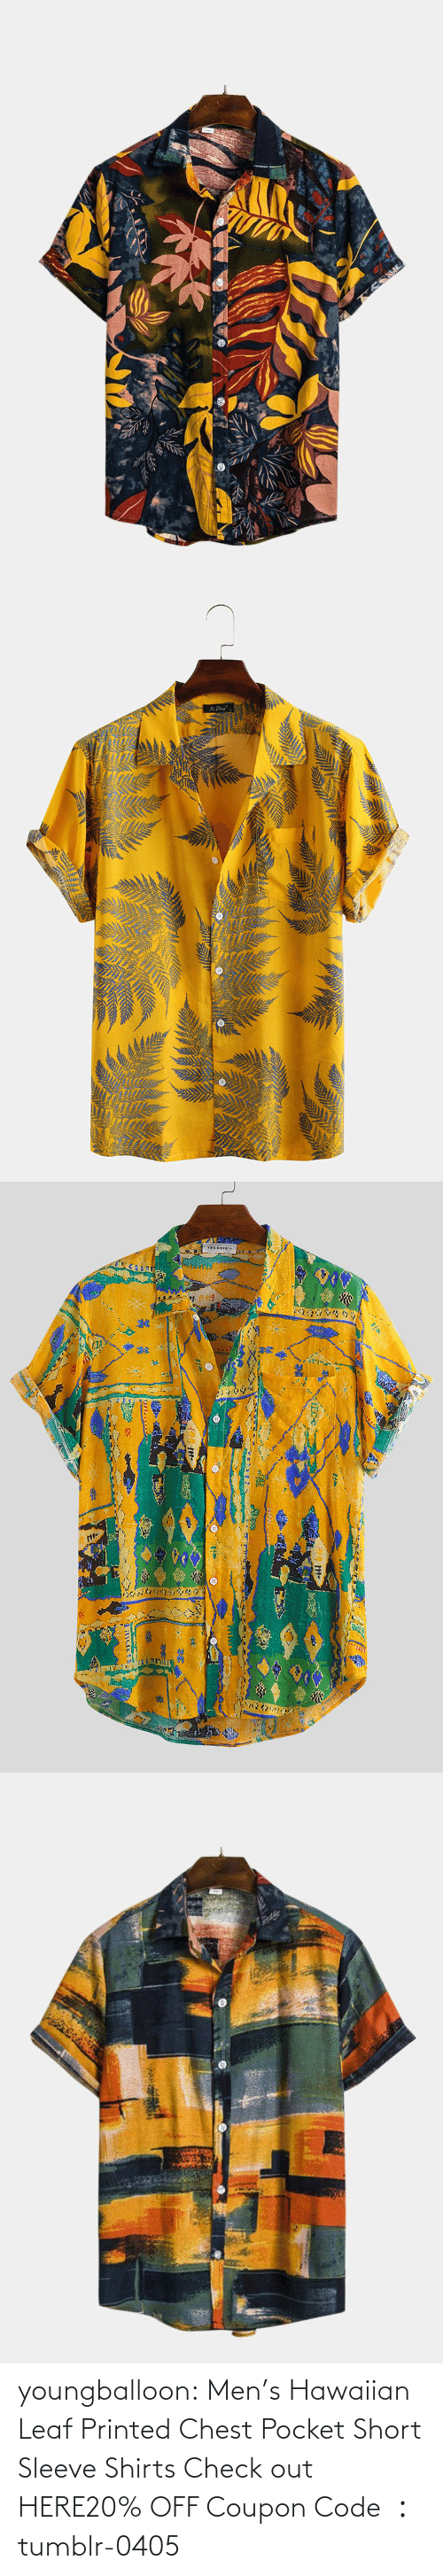 Chest: youngballoon:  Men's Hawaiian Leaf Printed Chest Pocket Short Sleeve Shirts Check out HERE20% OFF Coupon Code : tumblr-0405